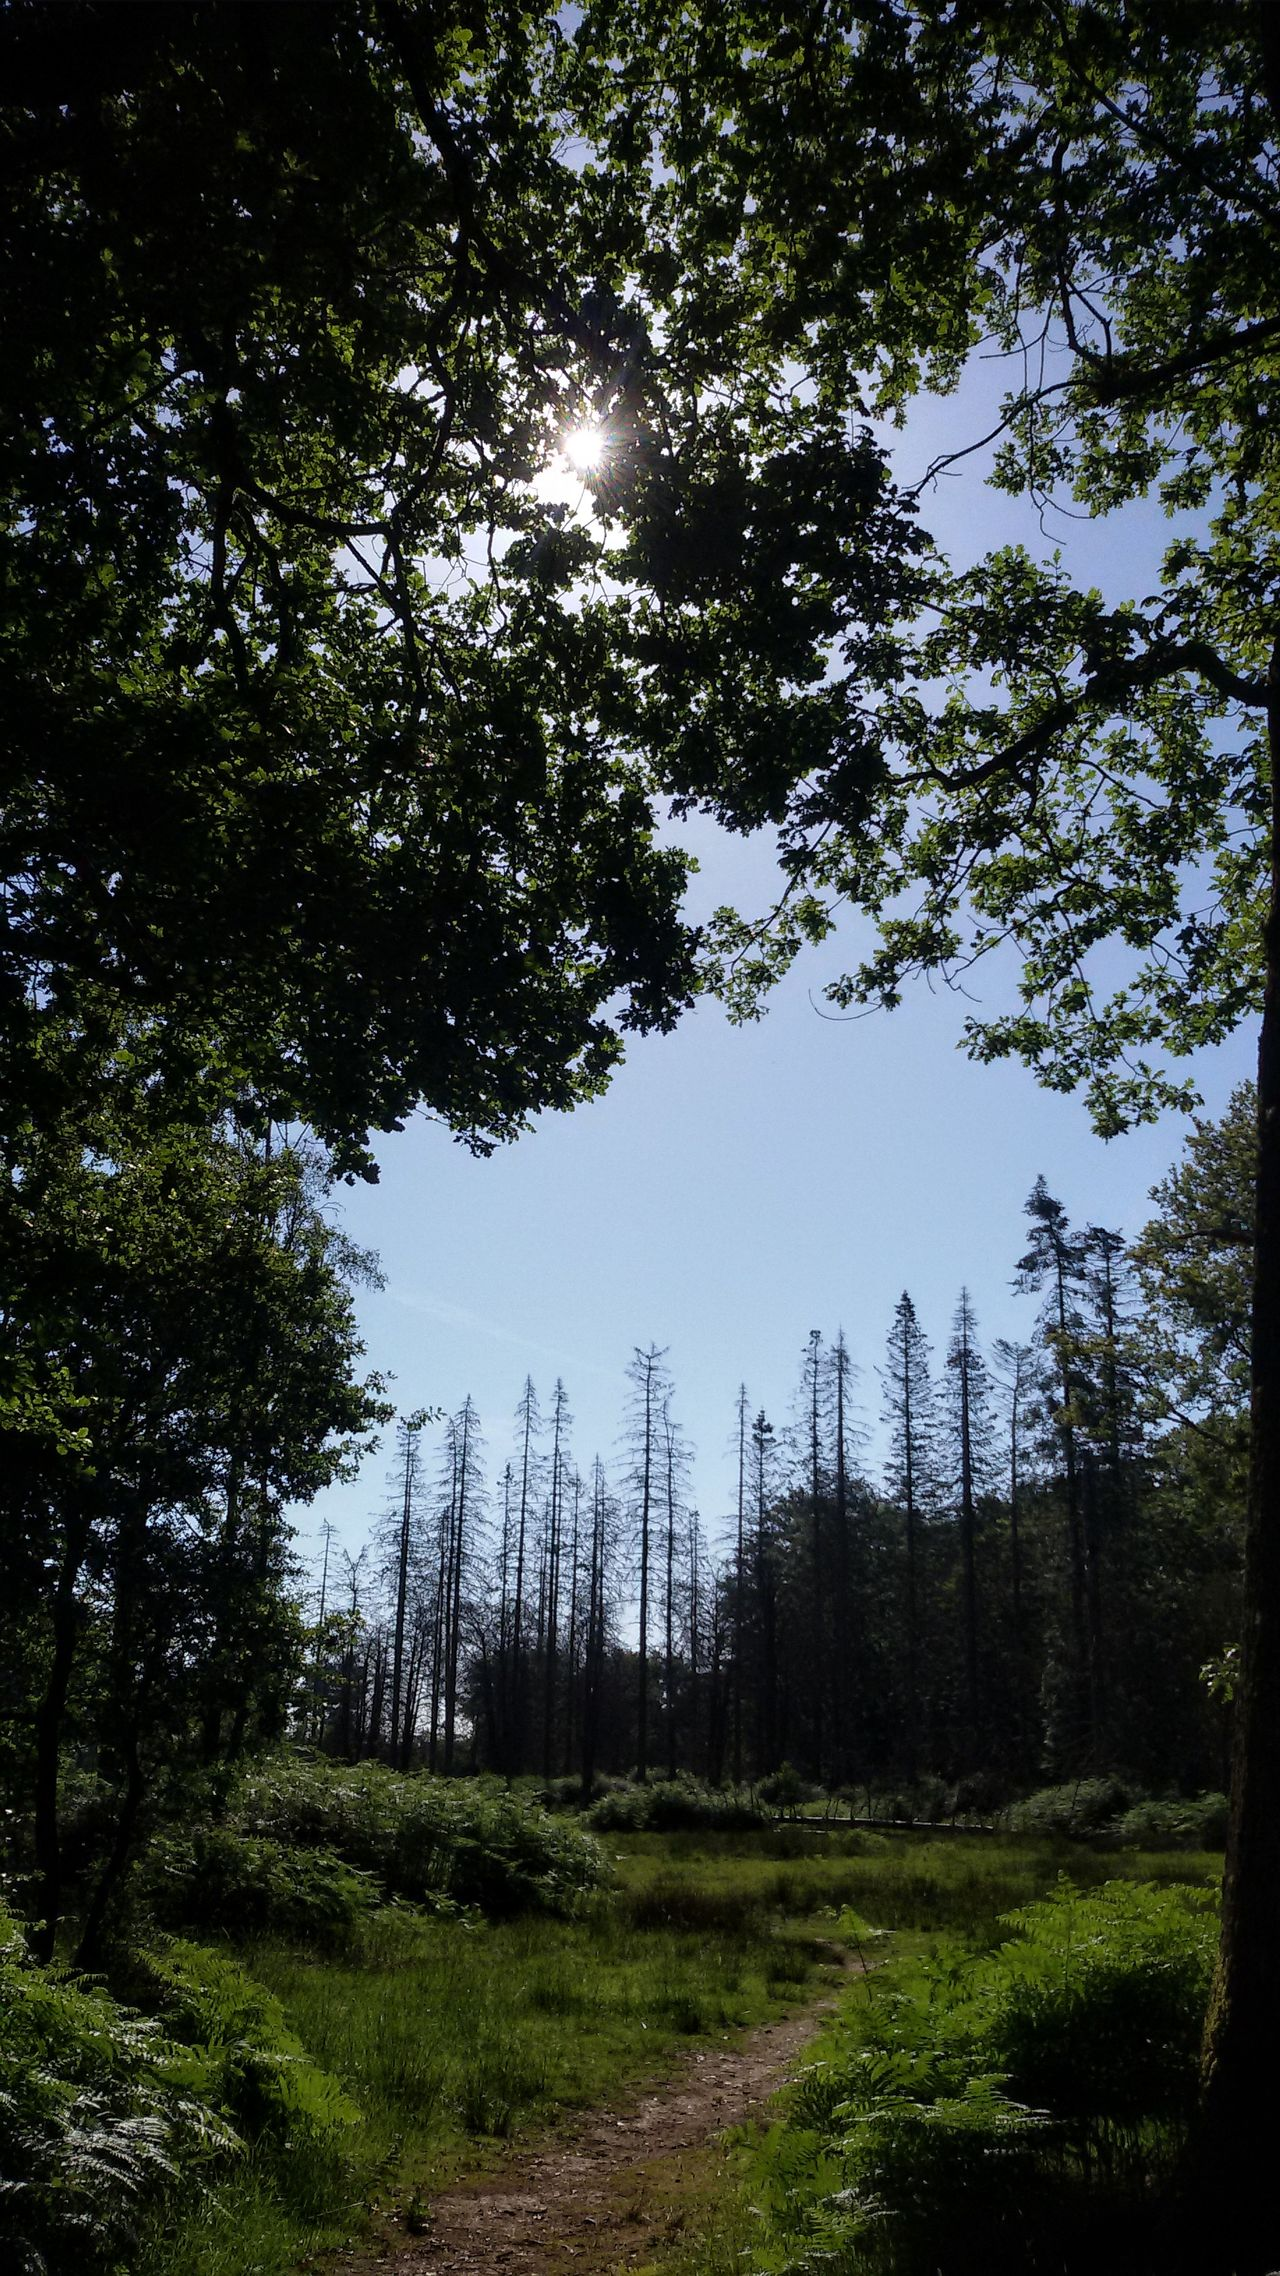 The amazing forest. Trees And Sky Tree Forest Nature Beauty In Nature Tranquil Scene Outdoors Day Leaves Environment Sun New Forest National Park Rhinfield Uk South